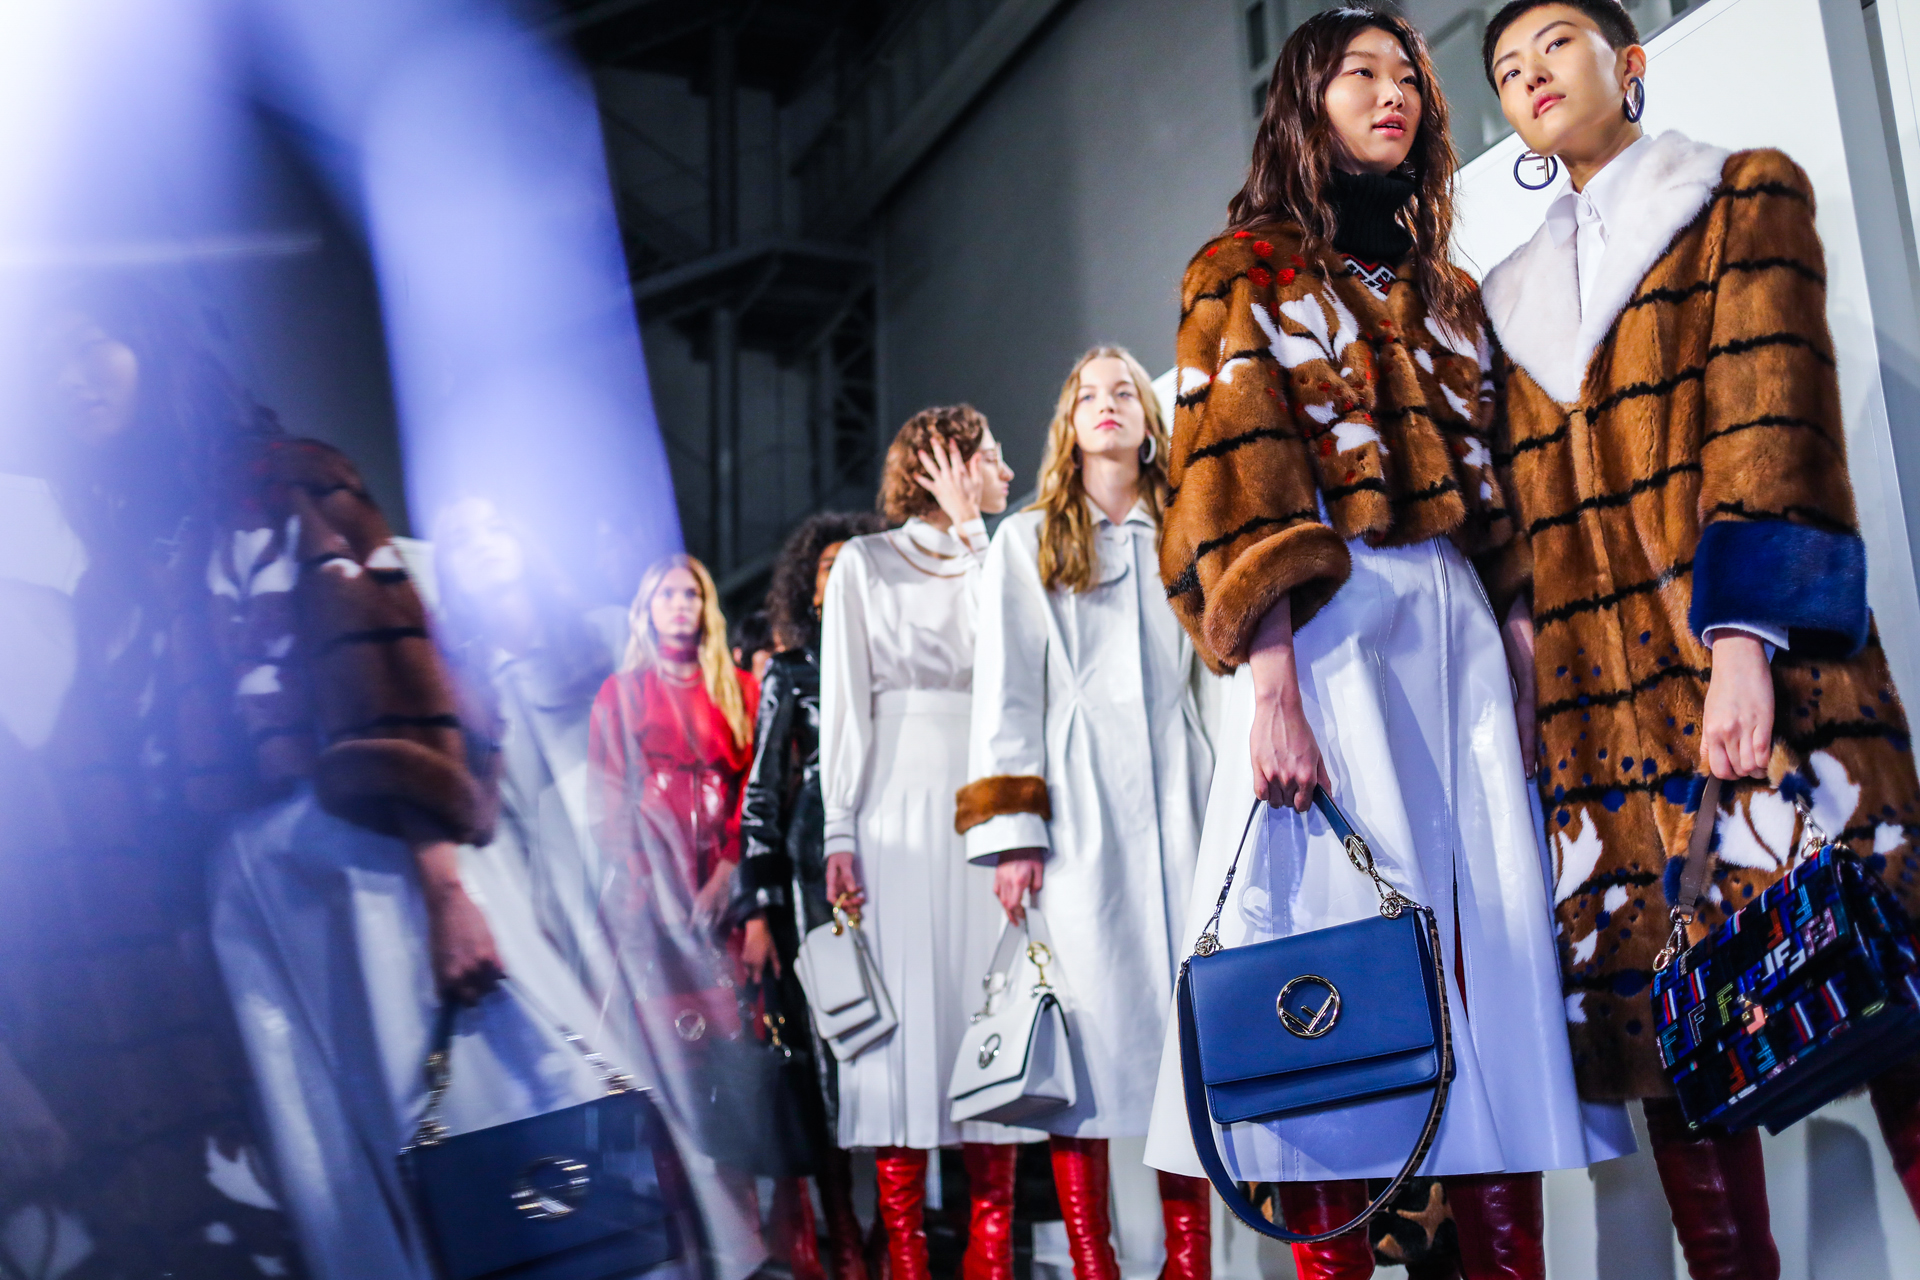 BACKSTAGE FENDI FALL-WINTER 2017/18 COLLECTION – MILAN